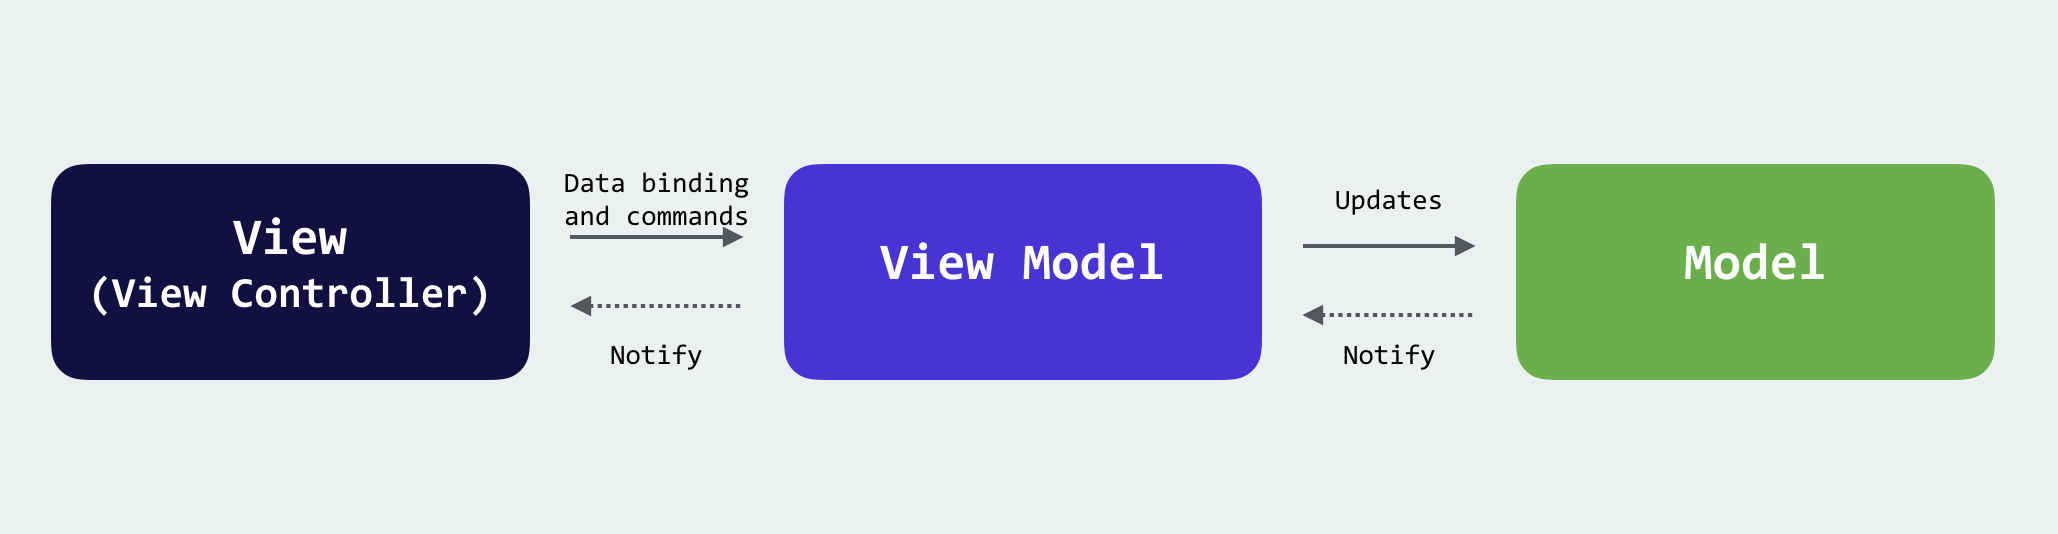 Introduction to MVVM: Refactoring a MVC App Using the MVVM Design Pattern 1